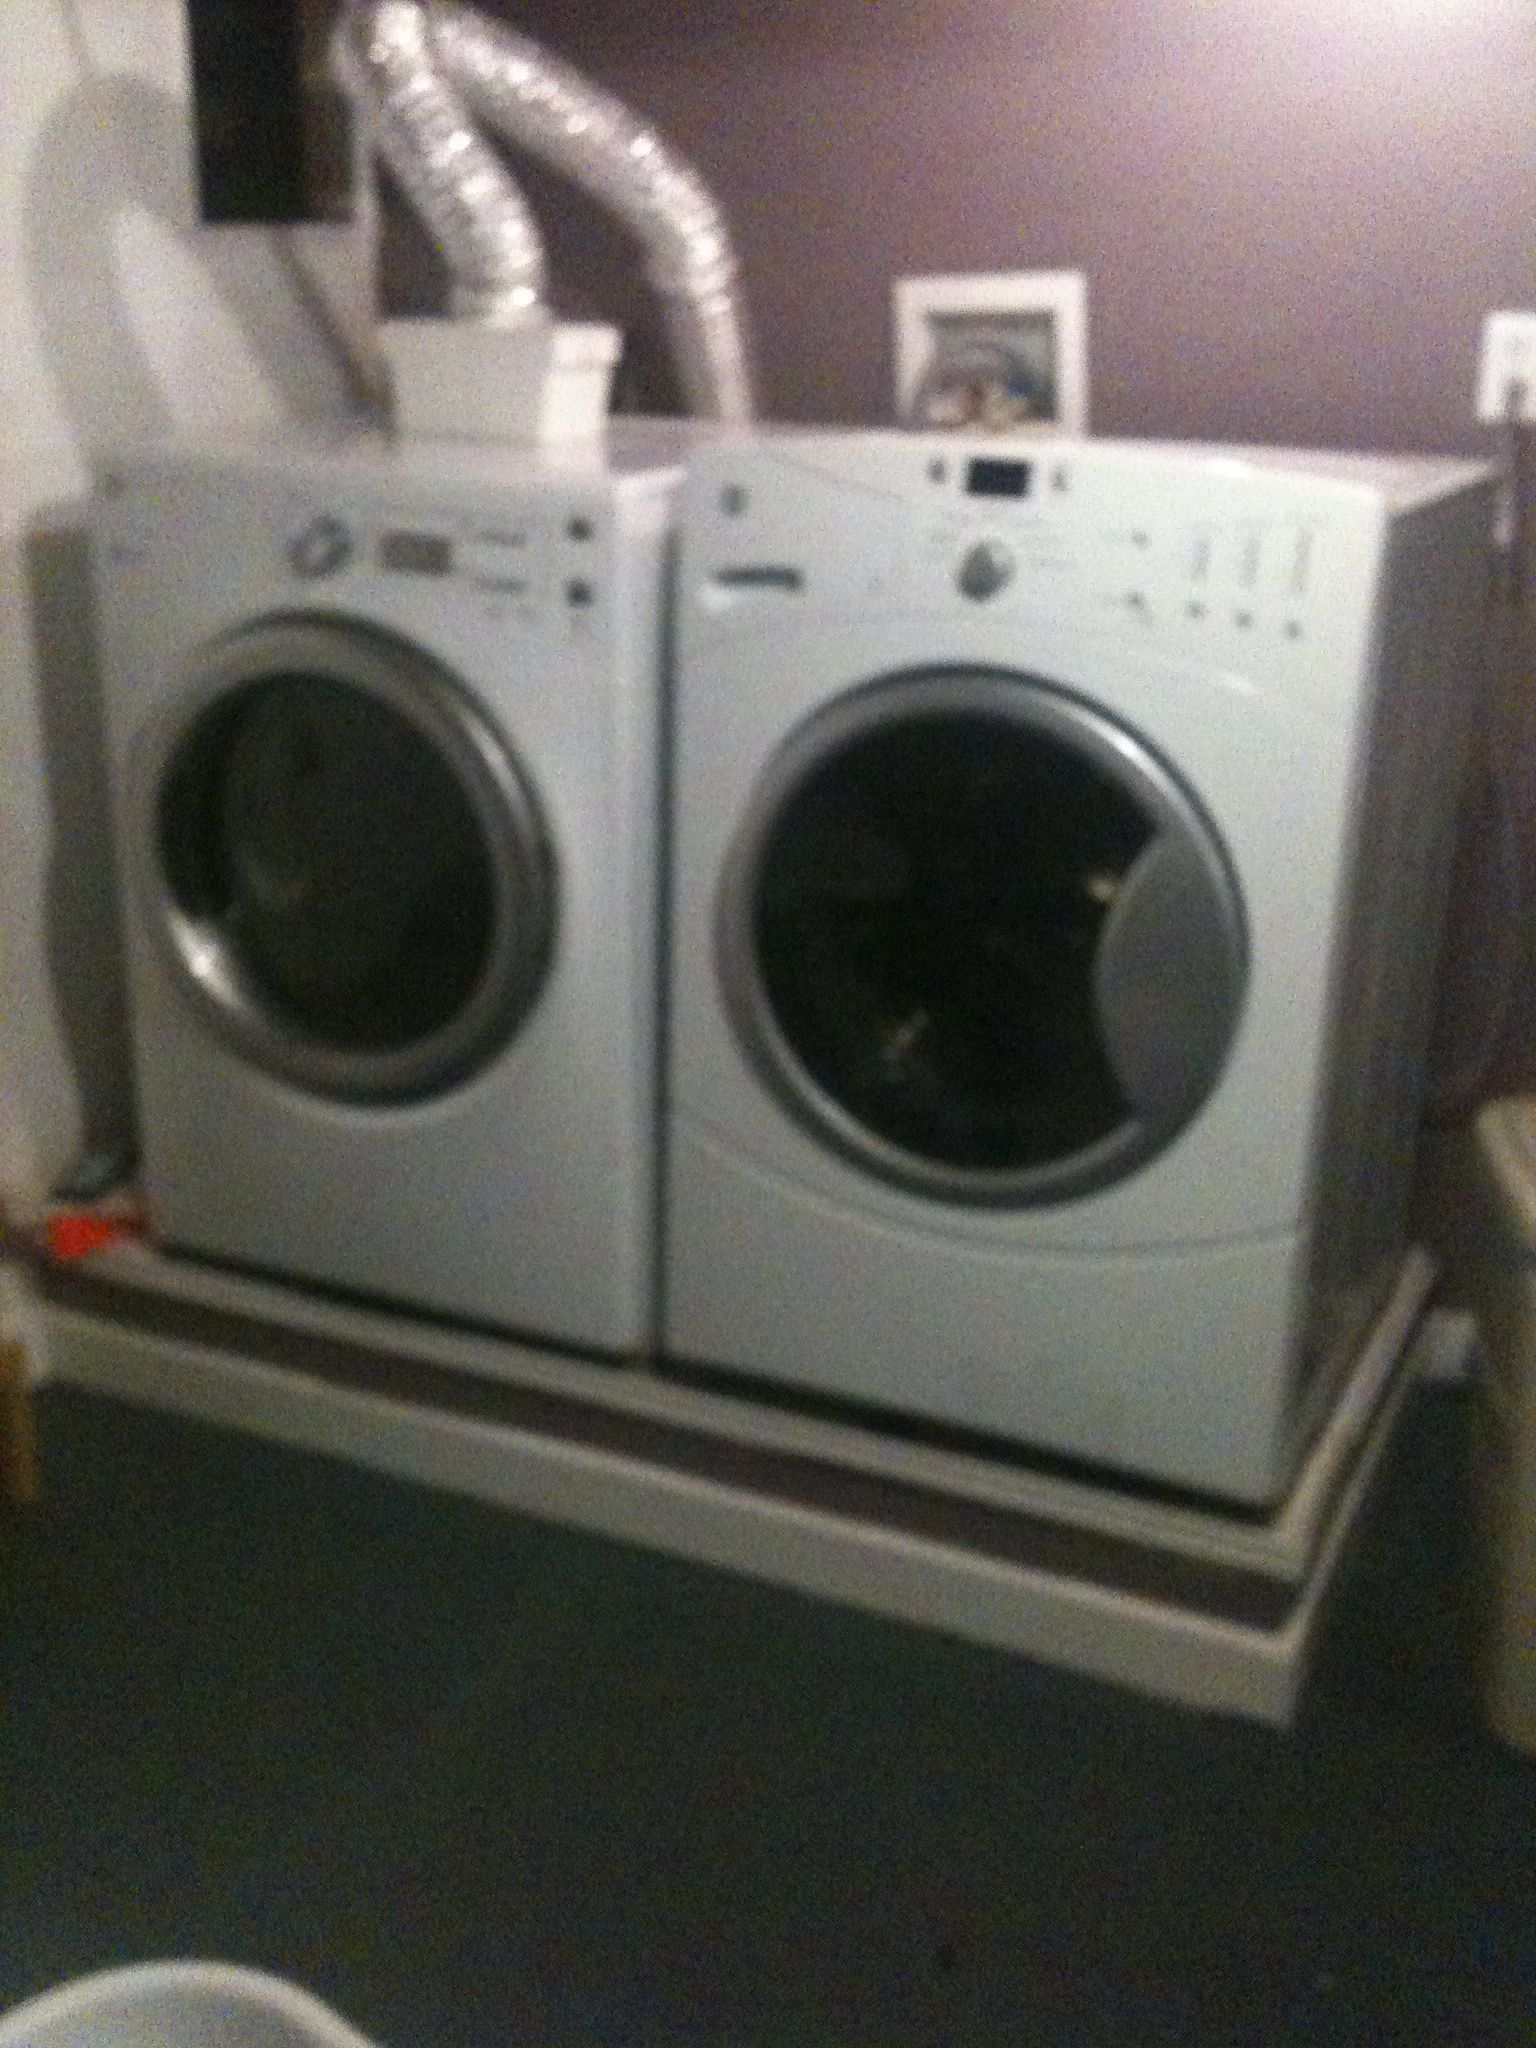 Diy Laundry Pedestal Use Cinder Blocks To Add Height To Washer And Dryer Then Add Wood Trim And Paint Washer And Dryer Diy Laundry Basement Inspiration